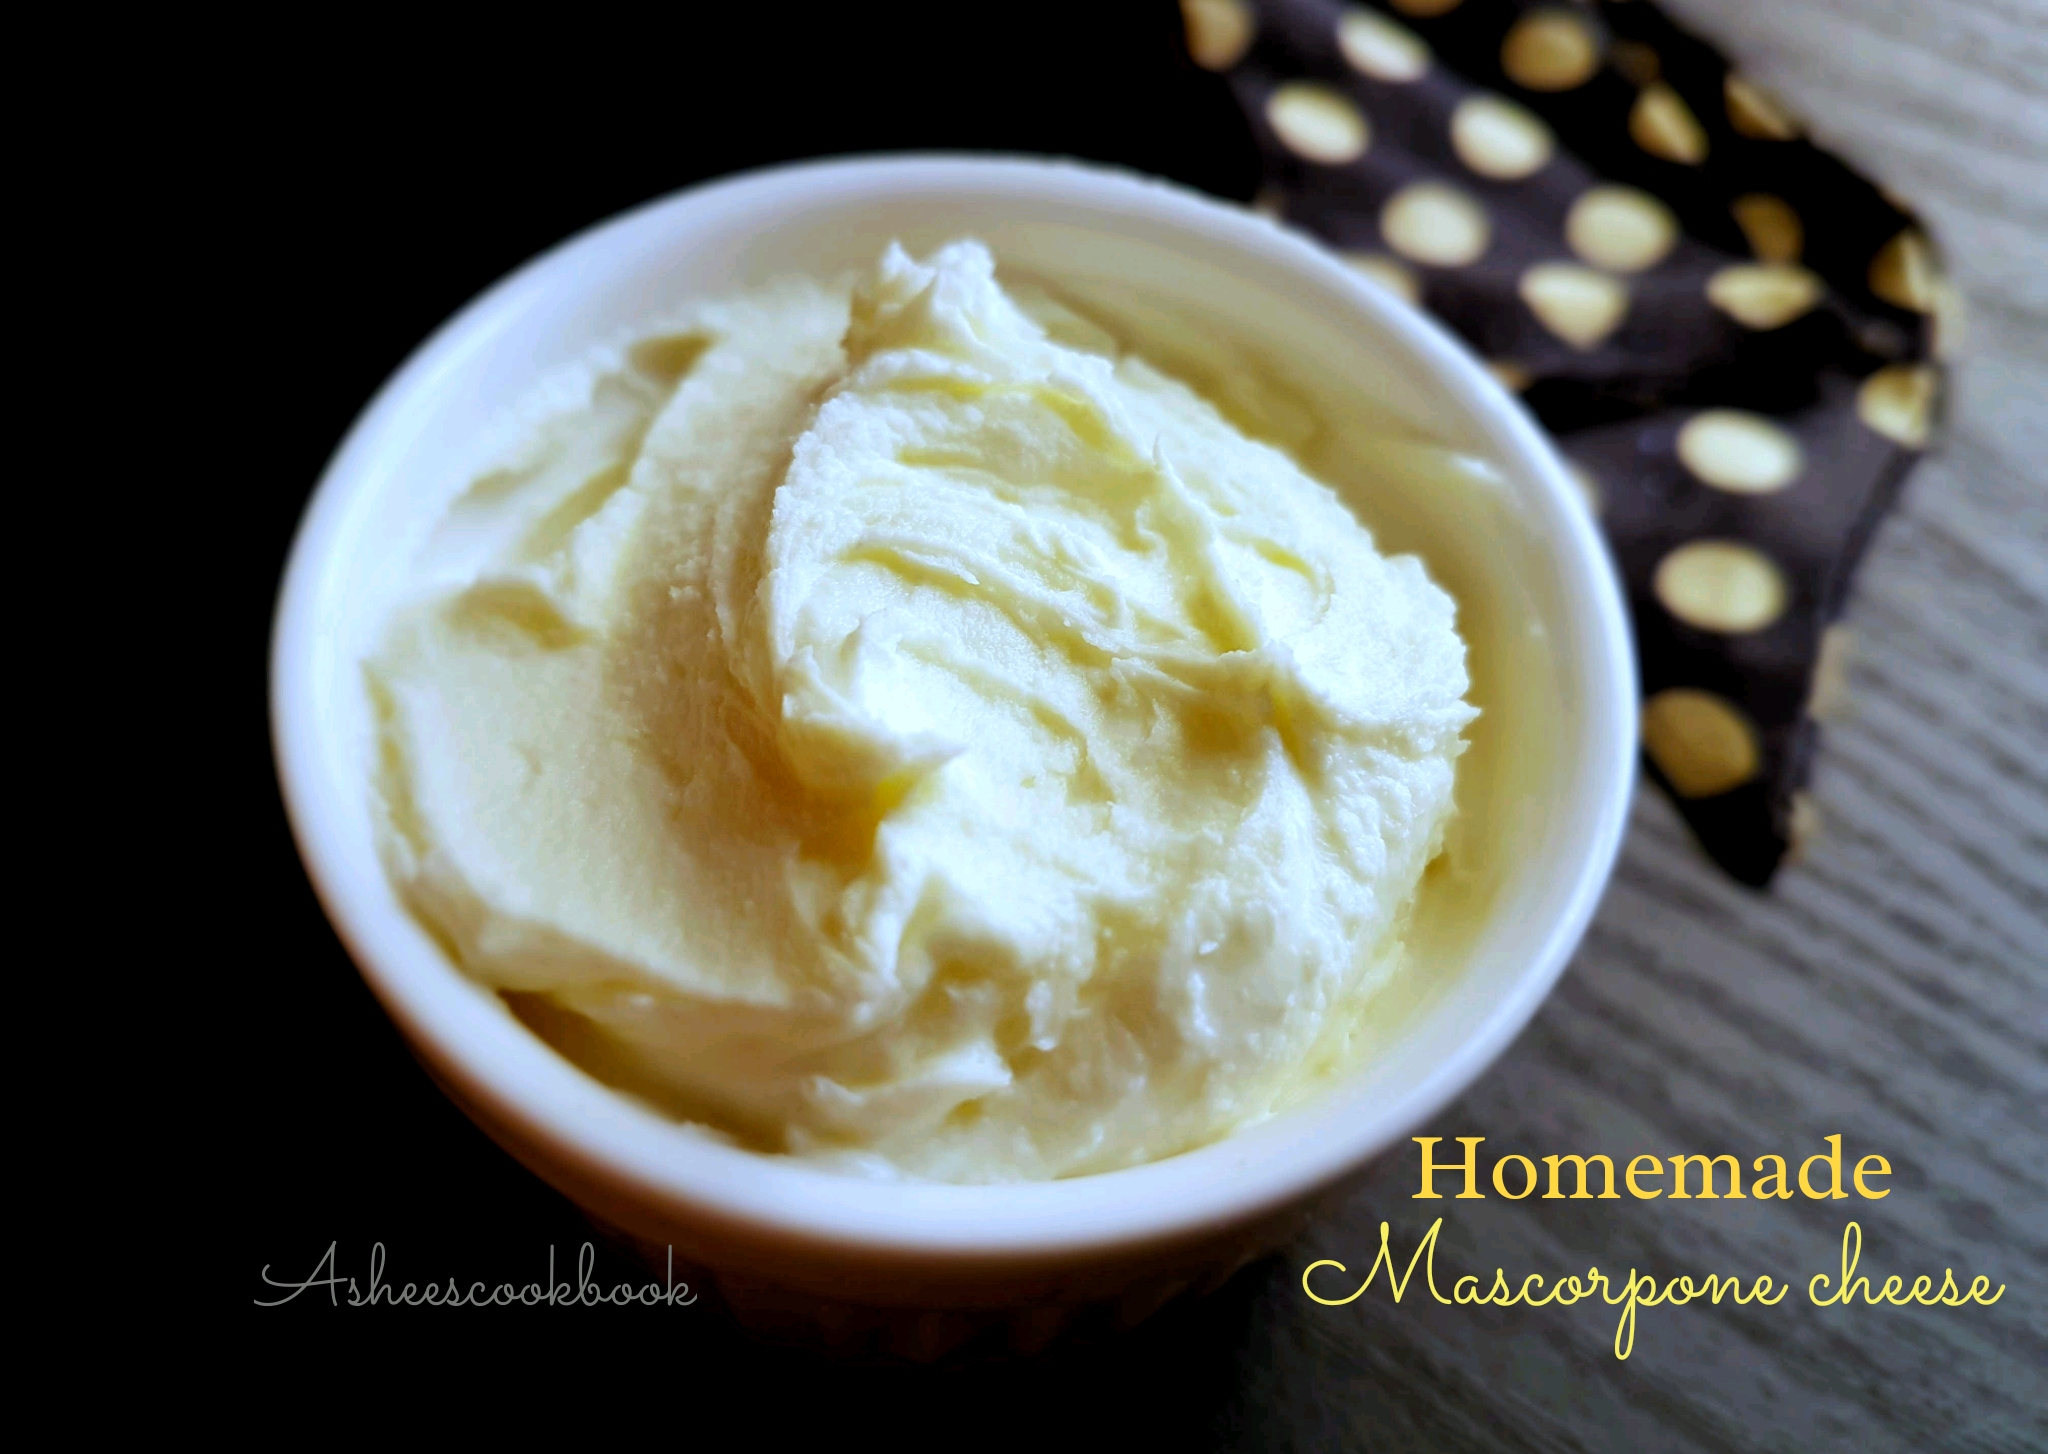 Homemade Mascarpone Cheese